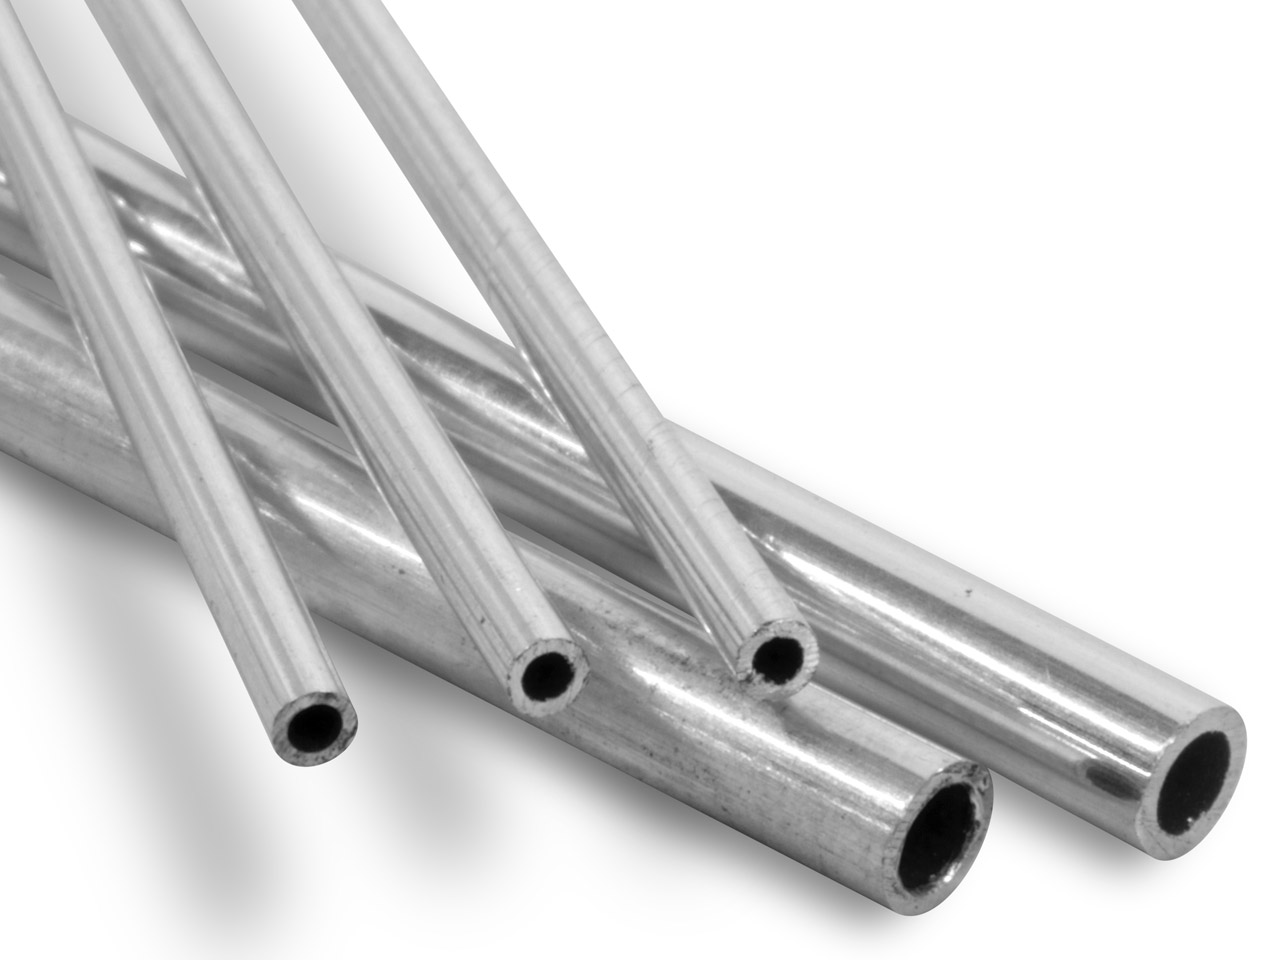 Sterling Silver Tube, Ref 11,      Outside Diameter 1.8mm,            Inside Diameter 1.2mm, 0.3mm Wall  Thickness